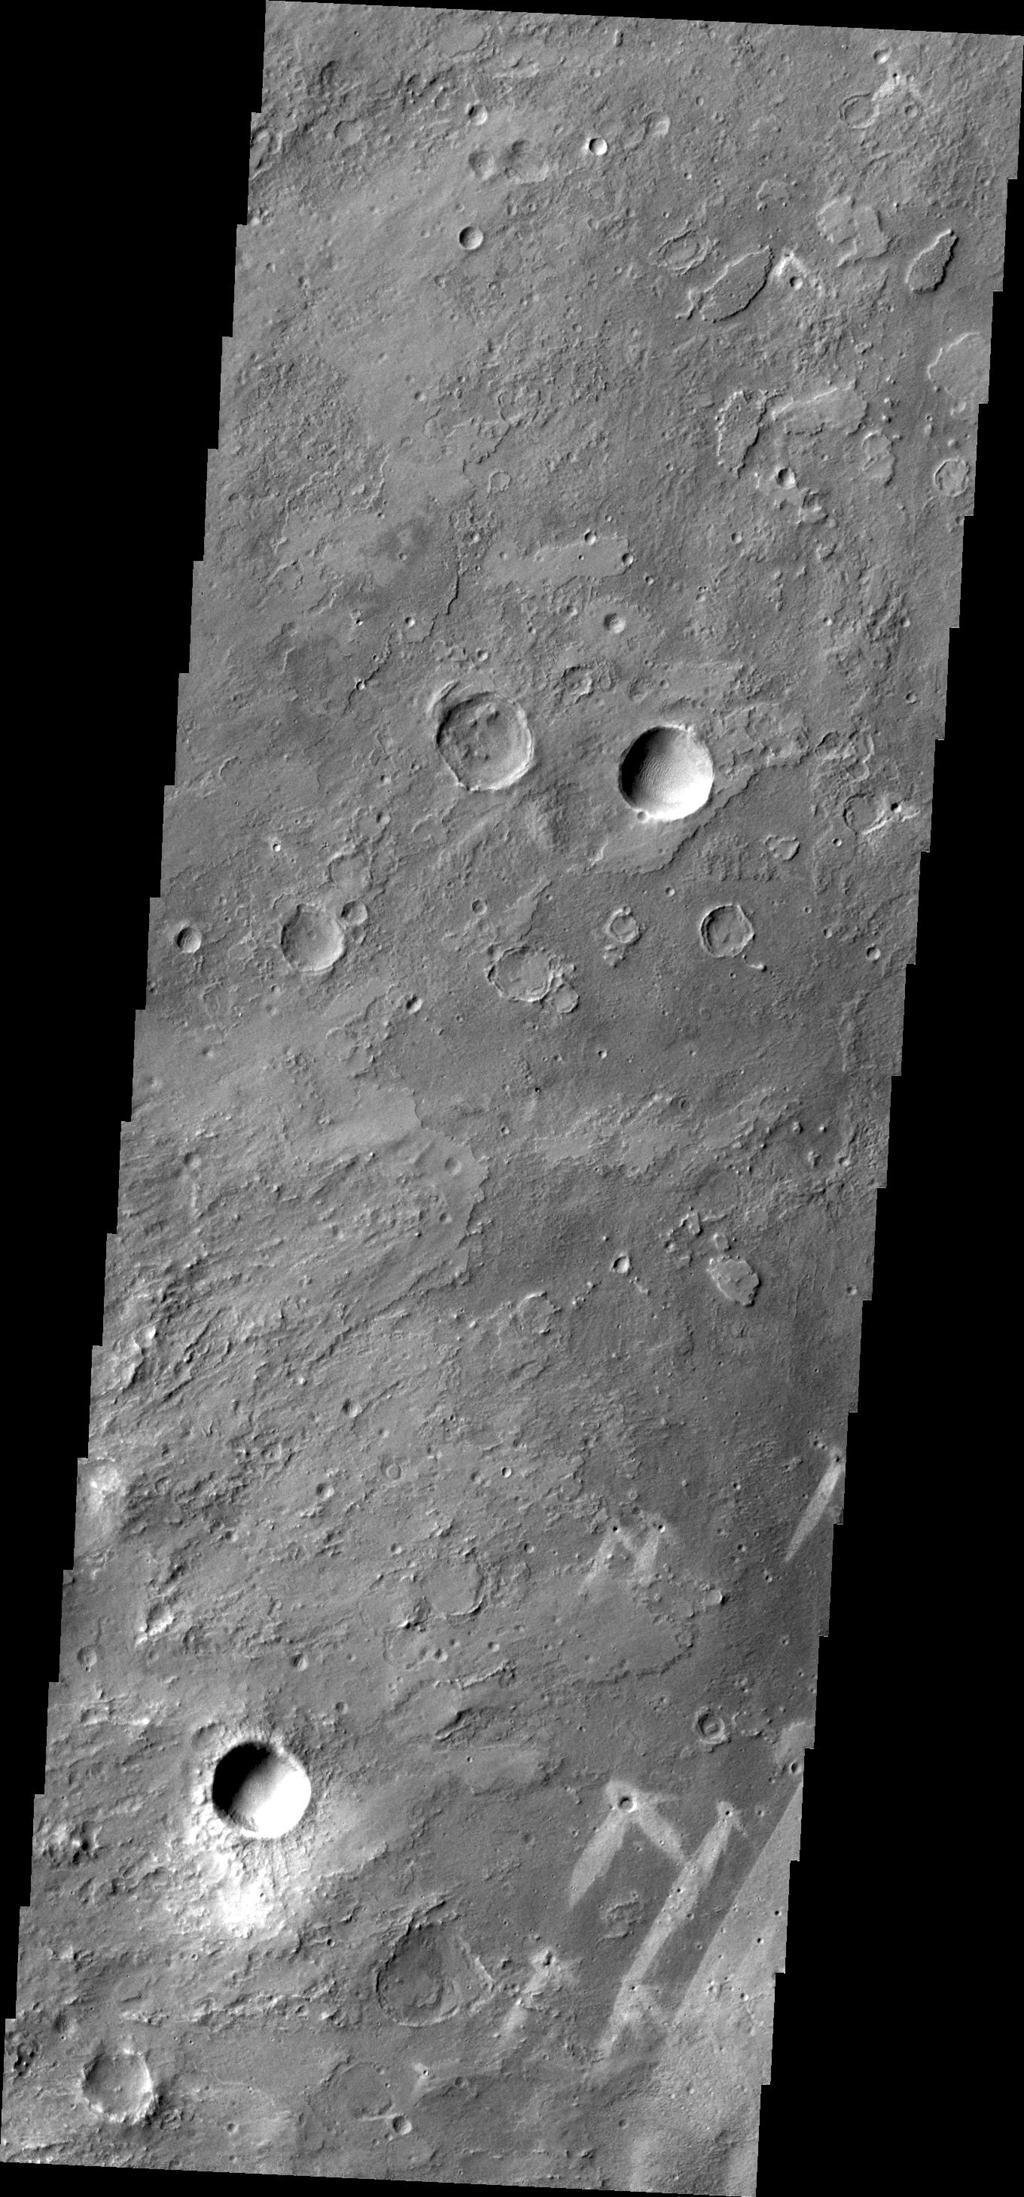 This image from NASA's Mars Odyssey of part of Meridiani Planum contains windstreaks that formed in several directions around a single crater. This indicates that wind directions changed, forming new tails for each prevailing wind direction.